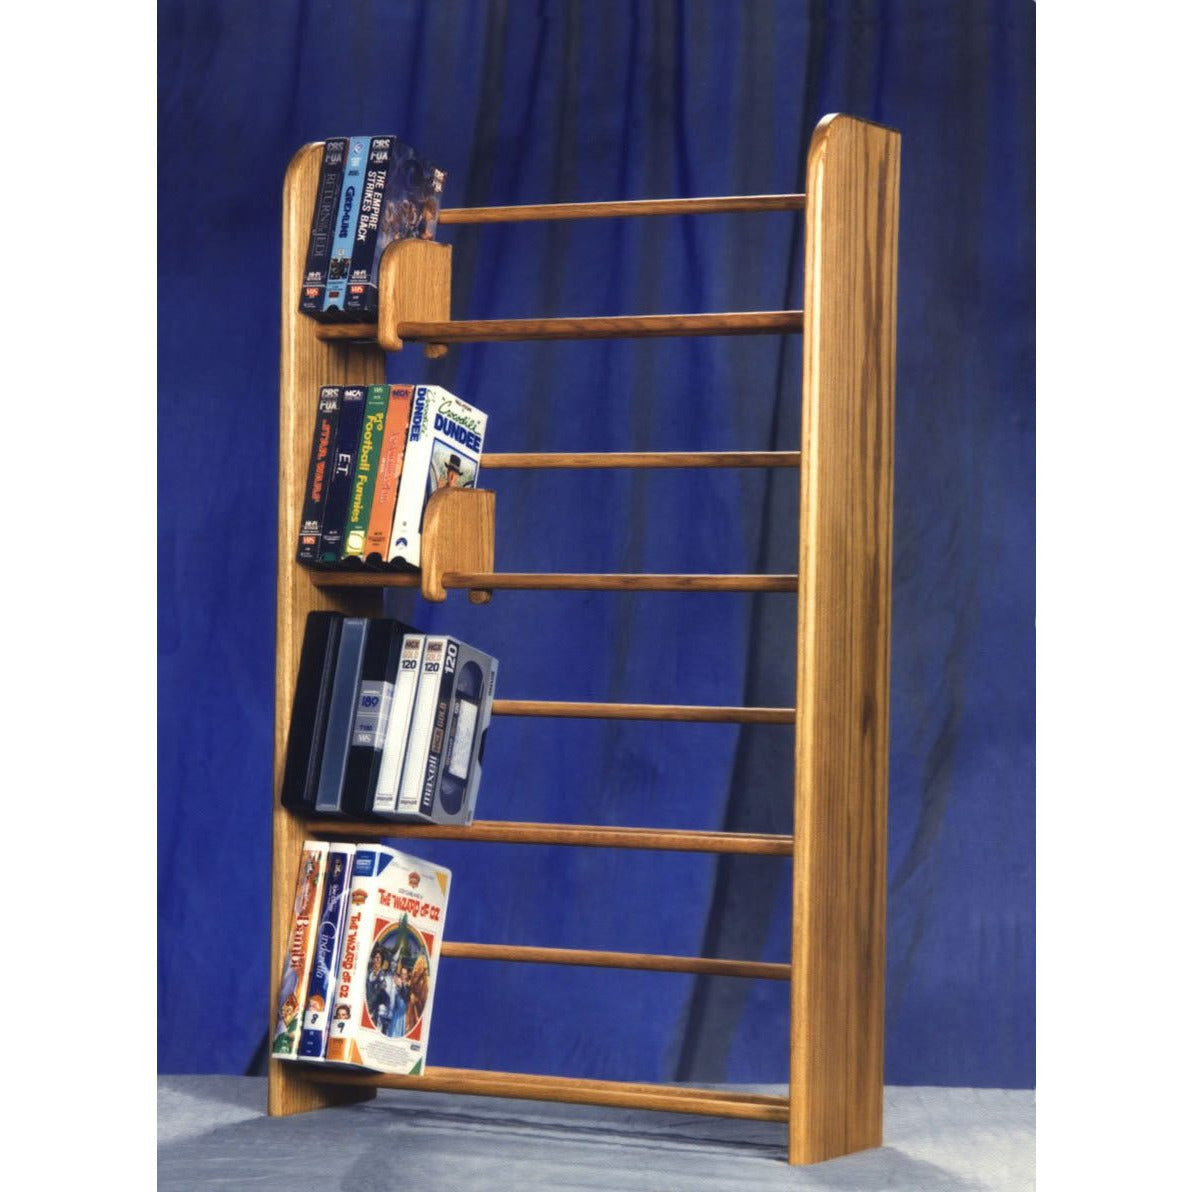 05 Series DVD and VHS Storage Racks - Dowel style - 5 sizes